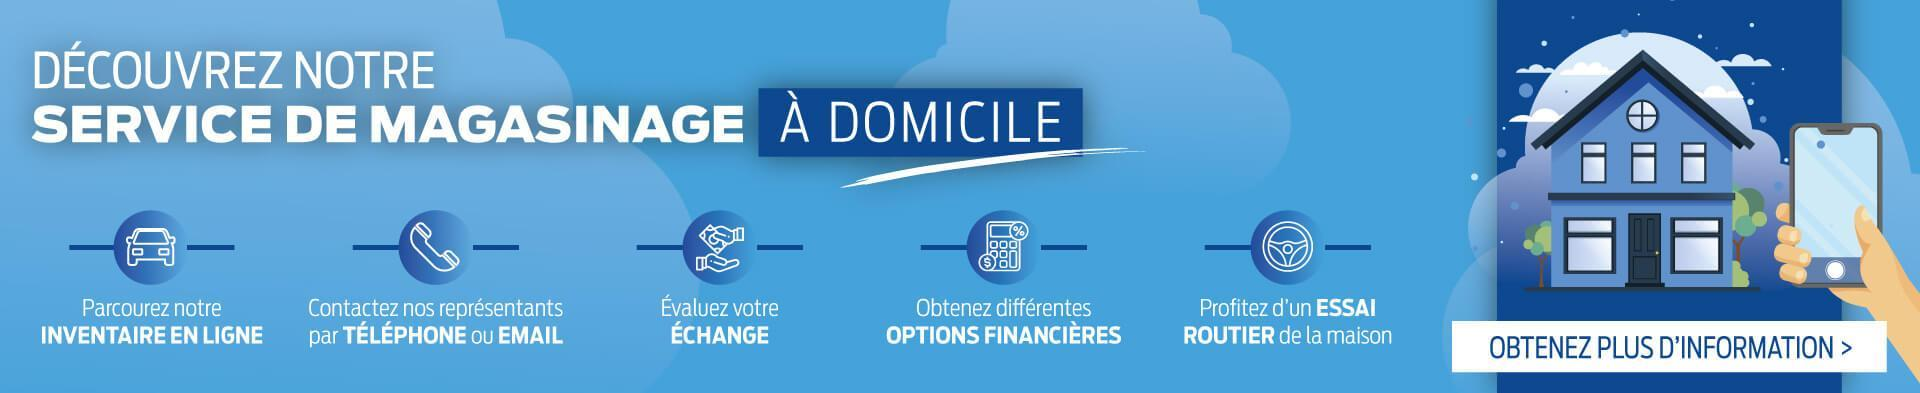 Service de magasinage à domicile